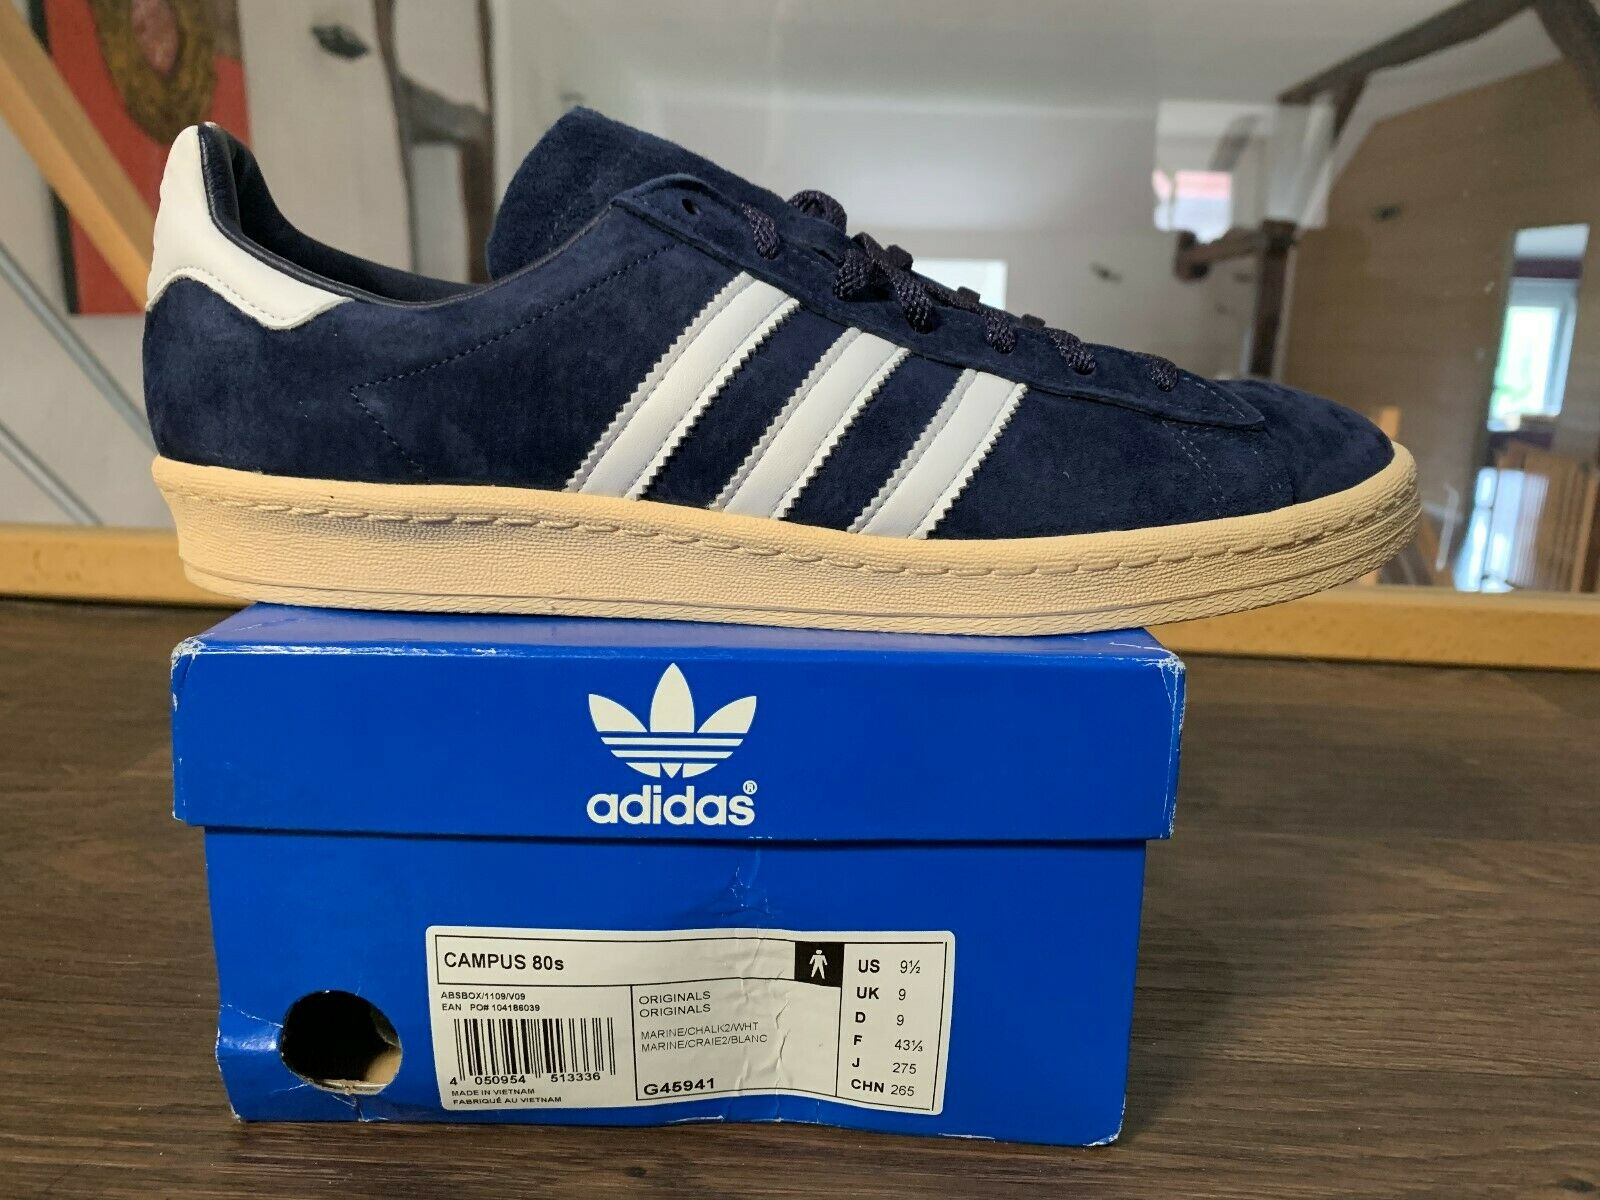 ADIDAS CAMPUS 80s FOOT PATROL Navy NEW B-Sides Rare 2011 baskets G45941